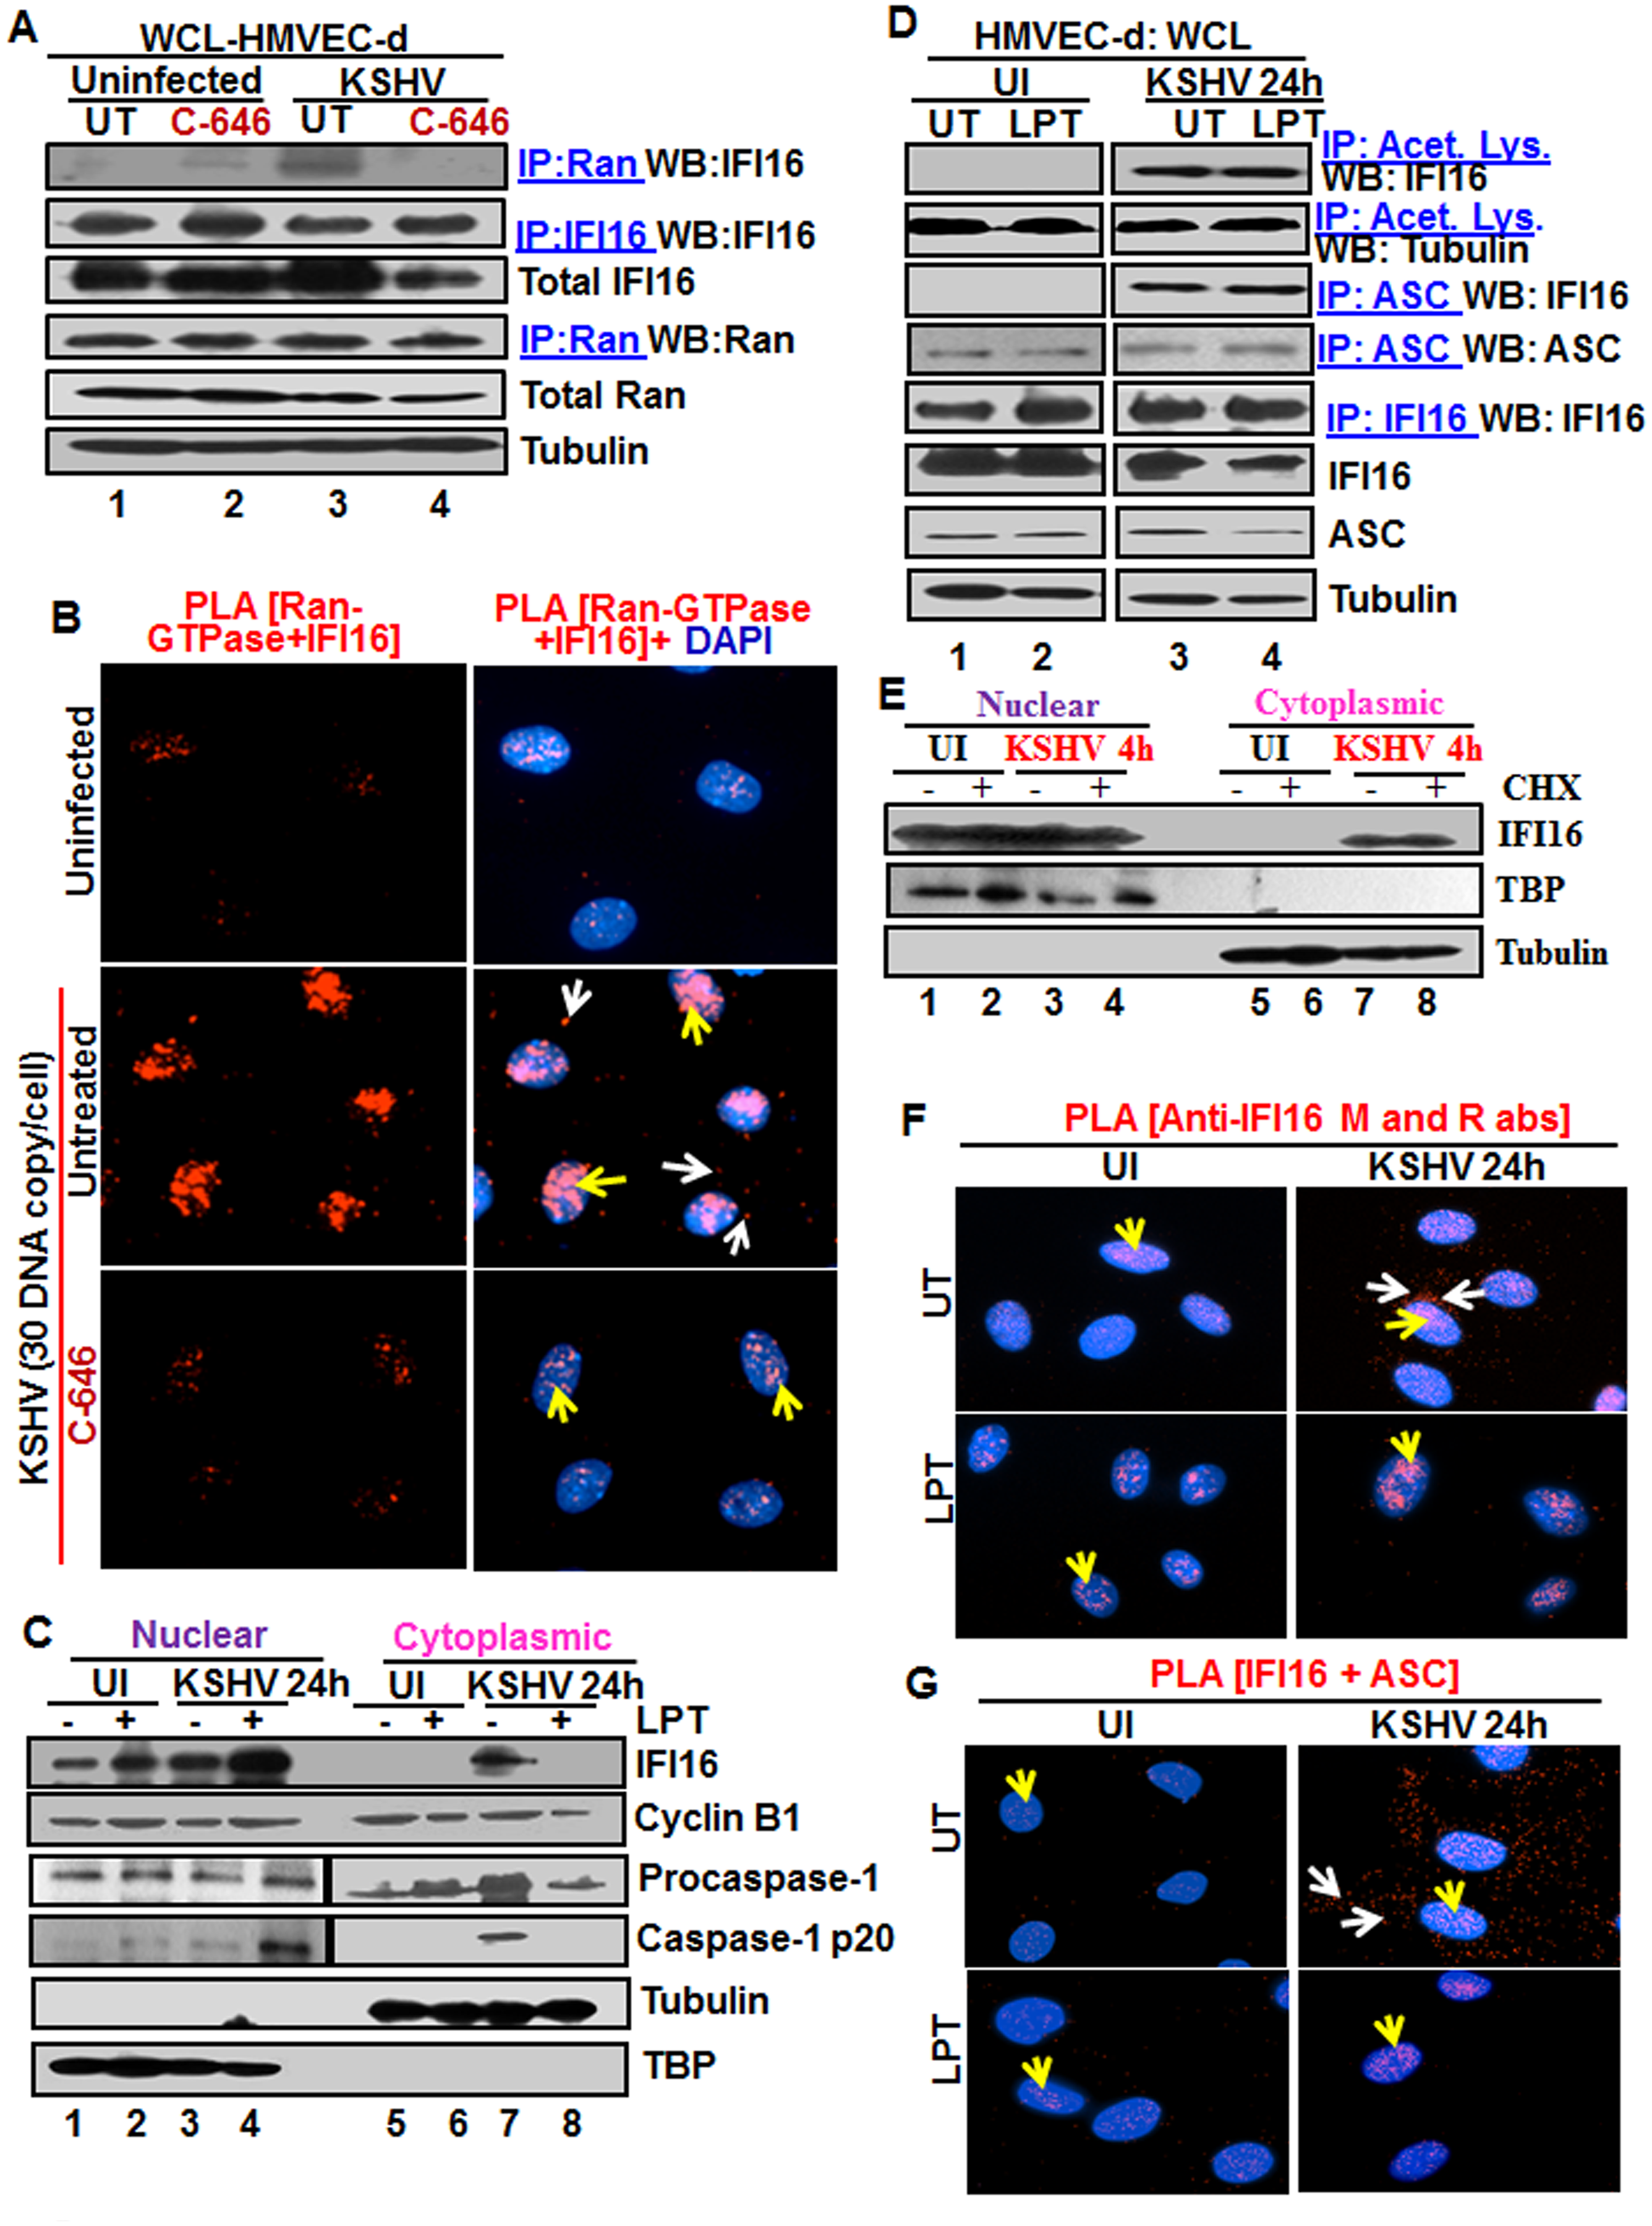 Effect of p300 inhibitor C-646 on IFI16 and Ran-GTPase association and effect of nuclear export blockage by Leptomycin B and protein synthesis inhibitor cycloheximide on the redistribution of IFI16 during <i>de novo</i> KSHV infection of HMVEC-d cells.